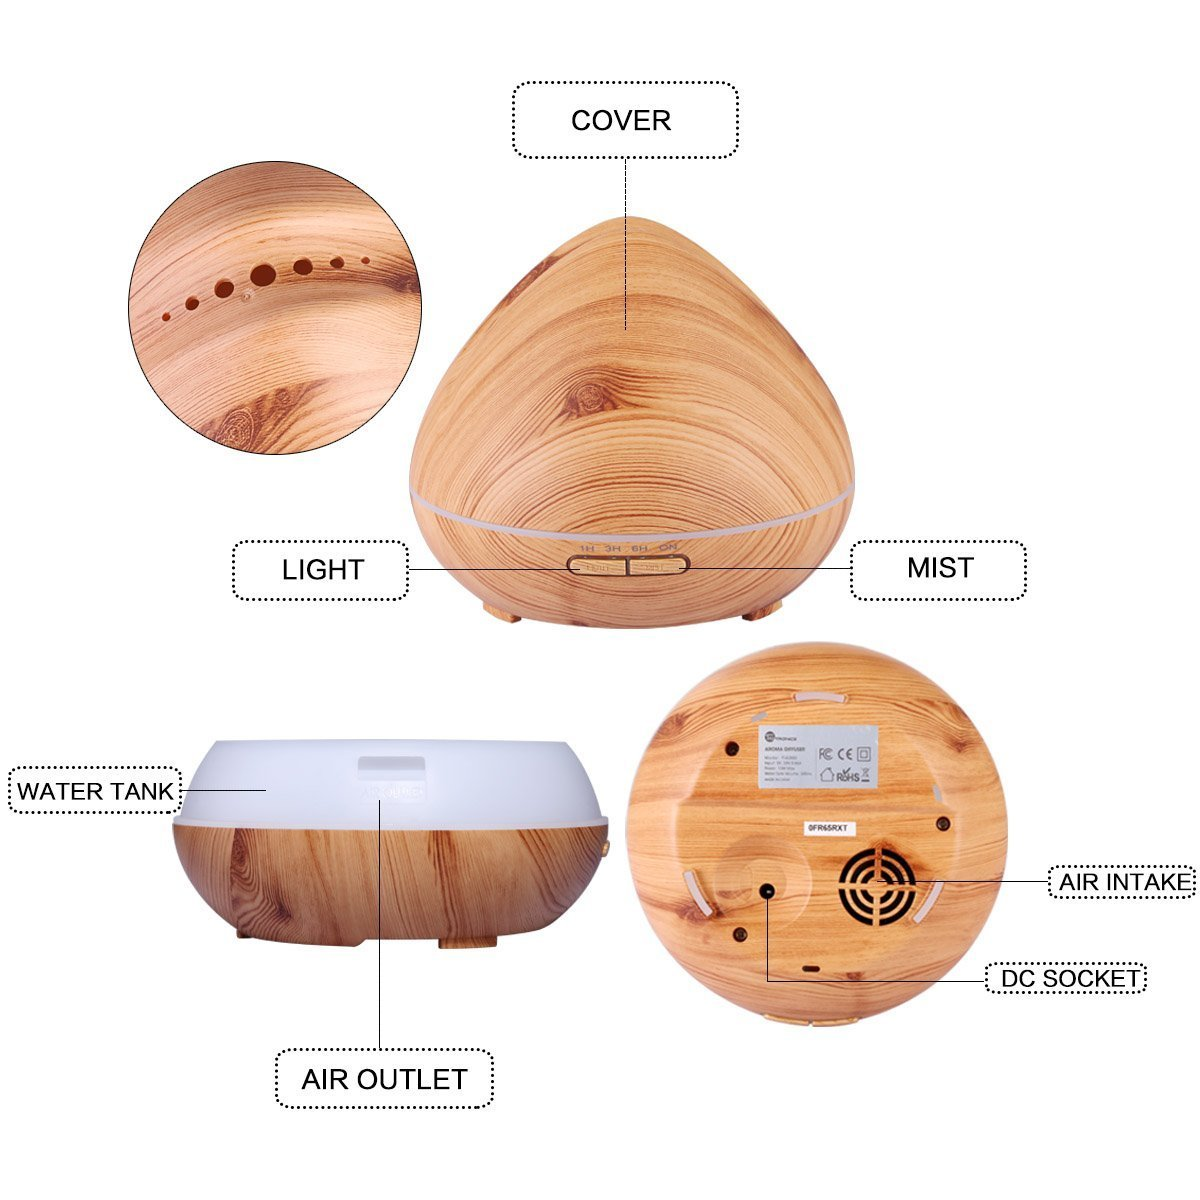 Qkfly Aromatherapy Essential Oil Diffuser Aroma Diffuser Ultrasonic Cool Mist Humidifier with 7 Color LED Lights Changing Waterless Auto Shut Off for Home Office Bedroom Room 400ml Wood Grain by Qkfly (Image #6)